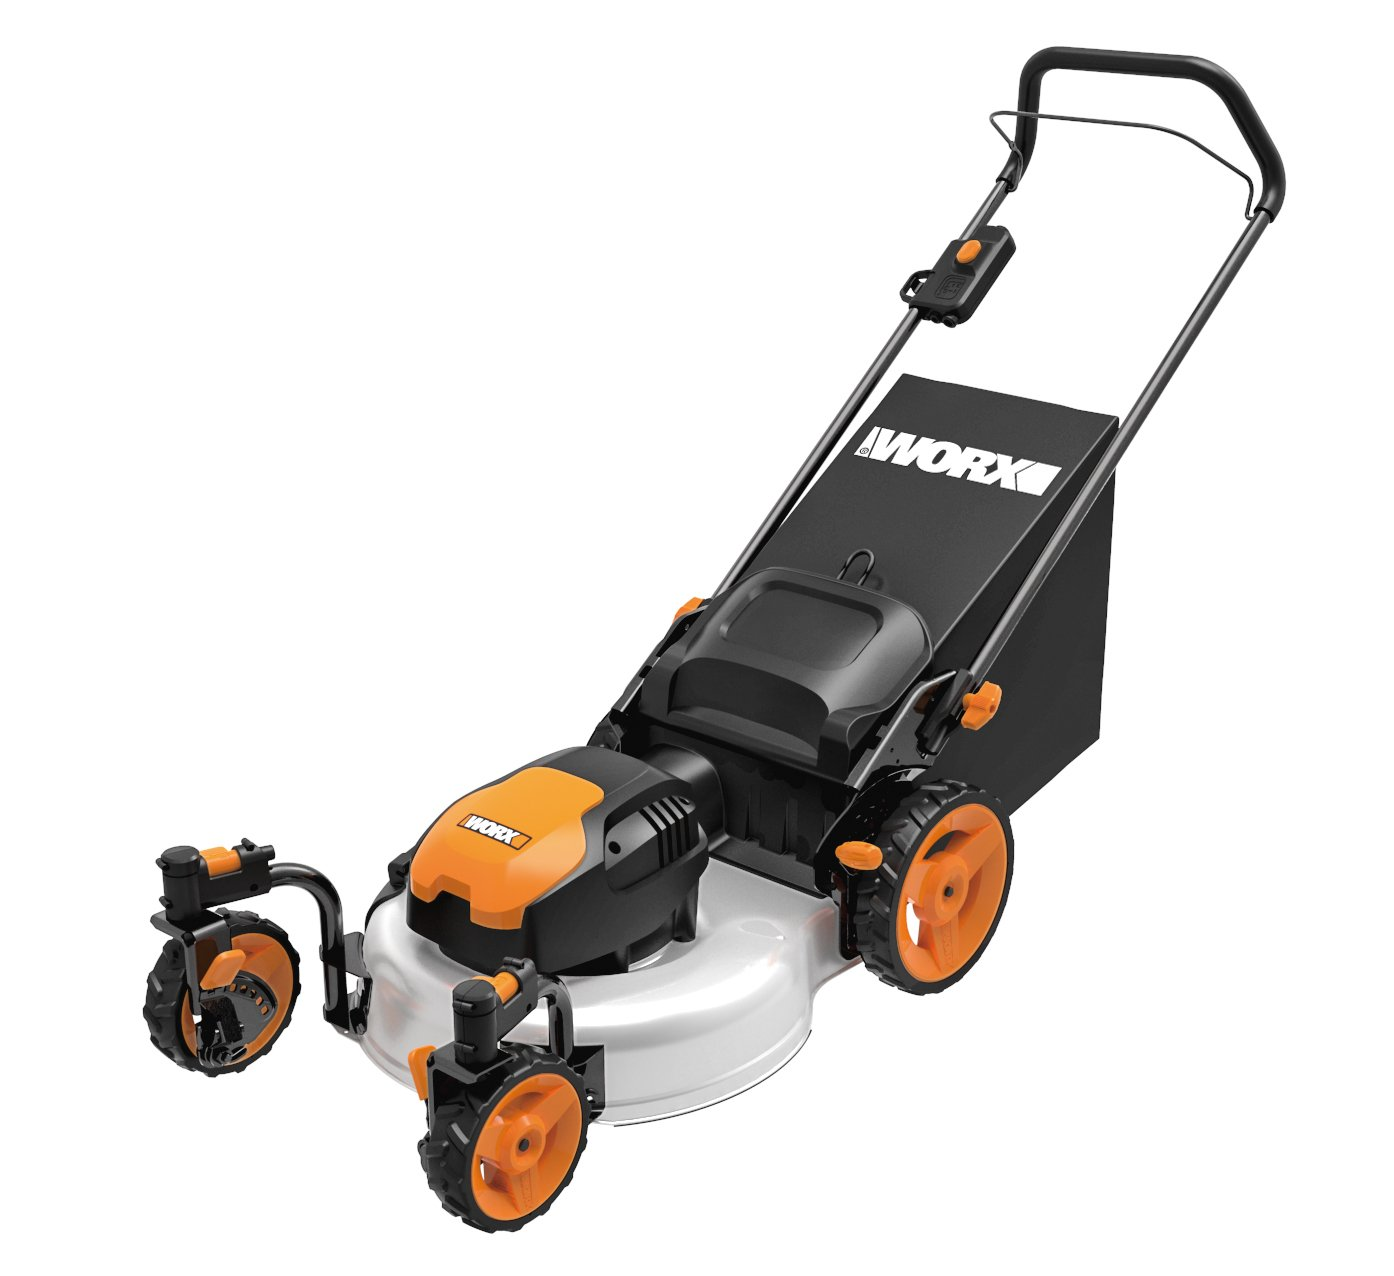 WORX WG719 13 Amp Caster Wheeled Electric Lawn Mower, 19-Inch